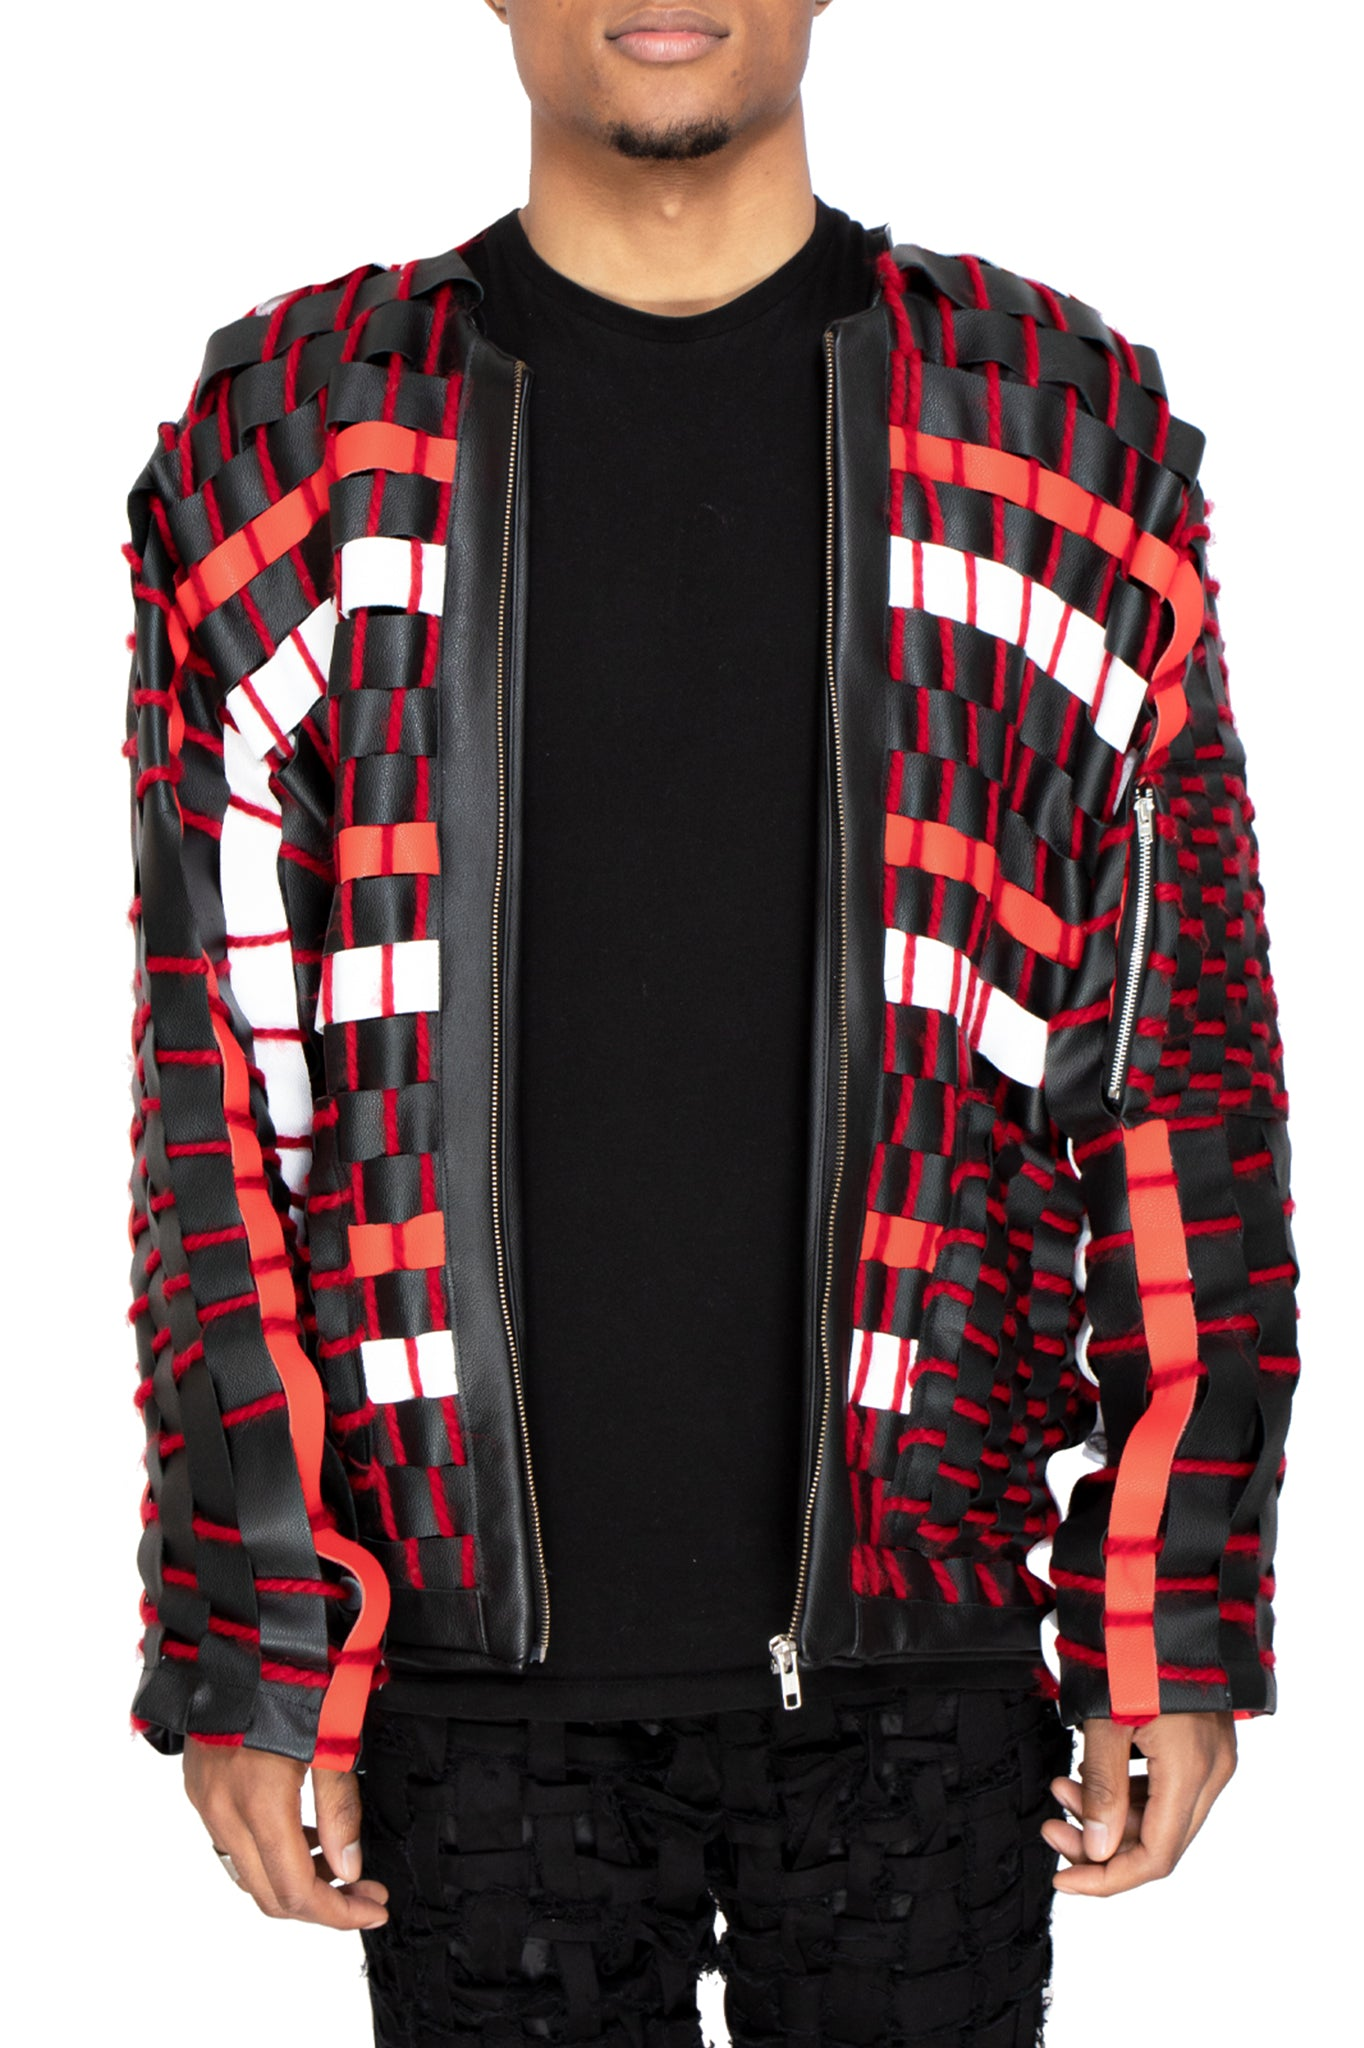 Raus Red and Black Wool and Leather Crafted Jacket